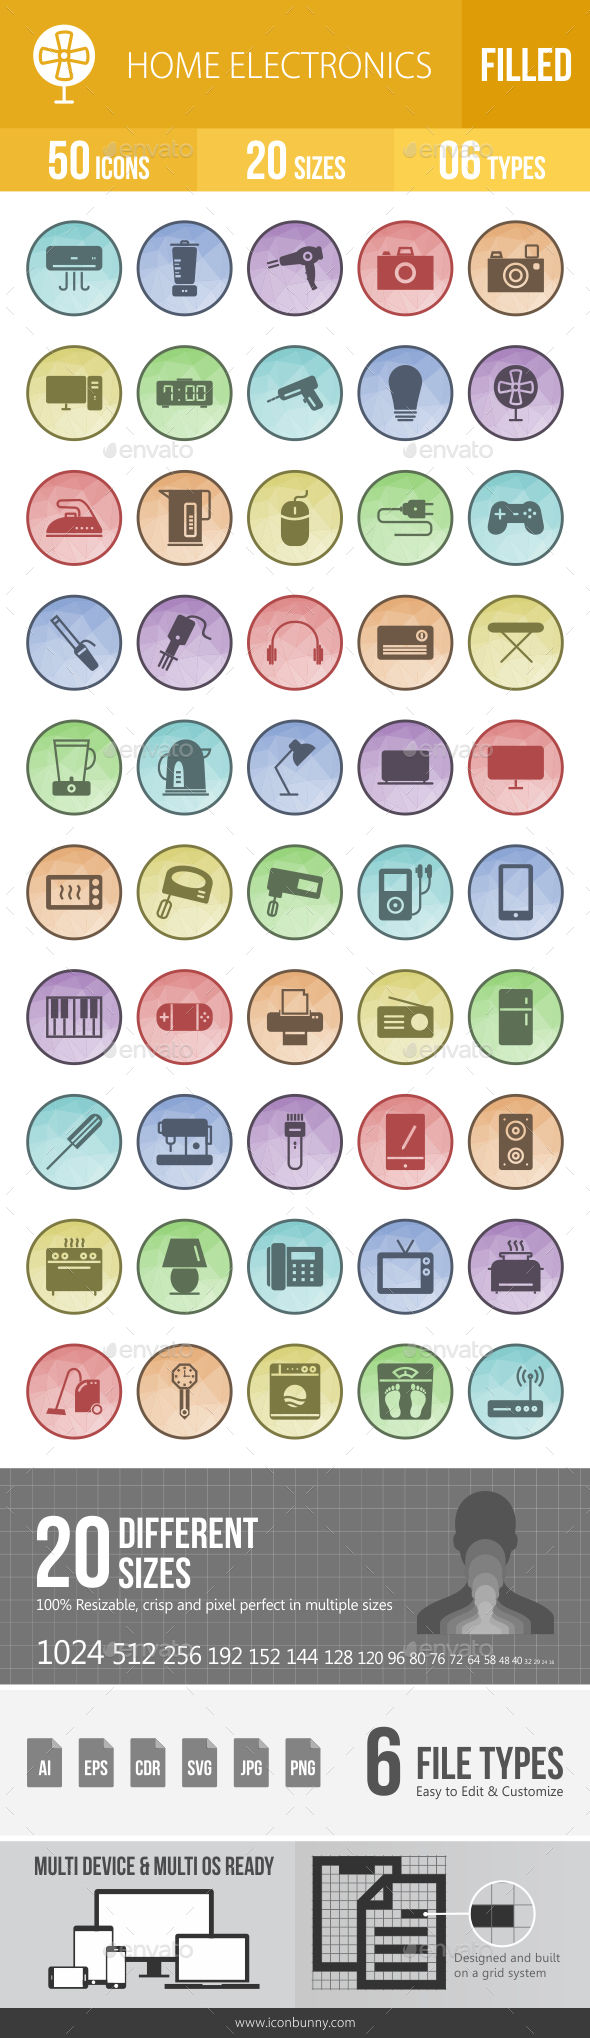 GraphicRiver Home Electronics Filled Low Poly B G Icons 20809144